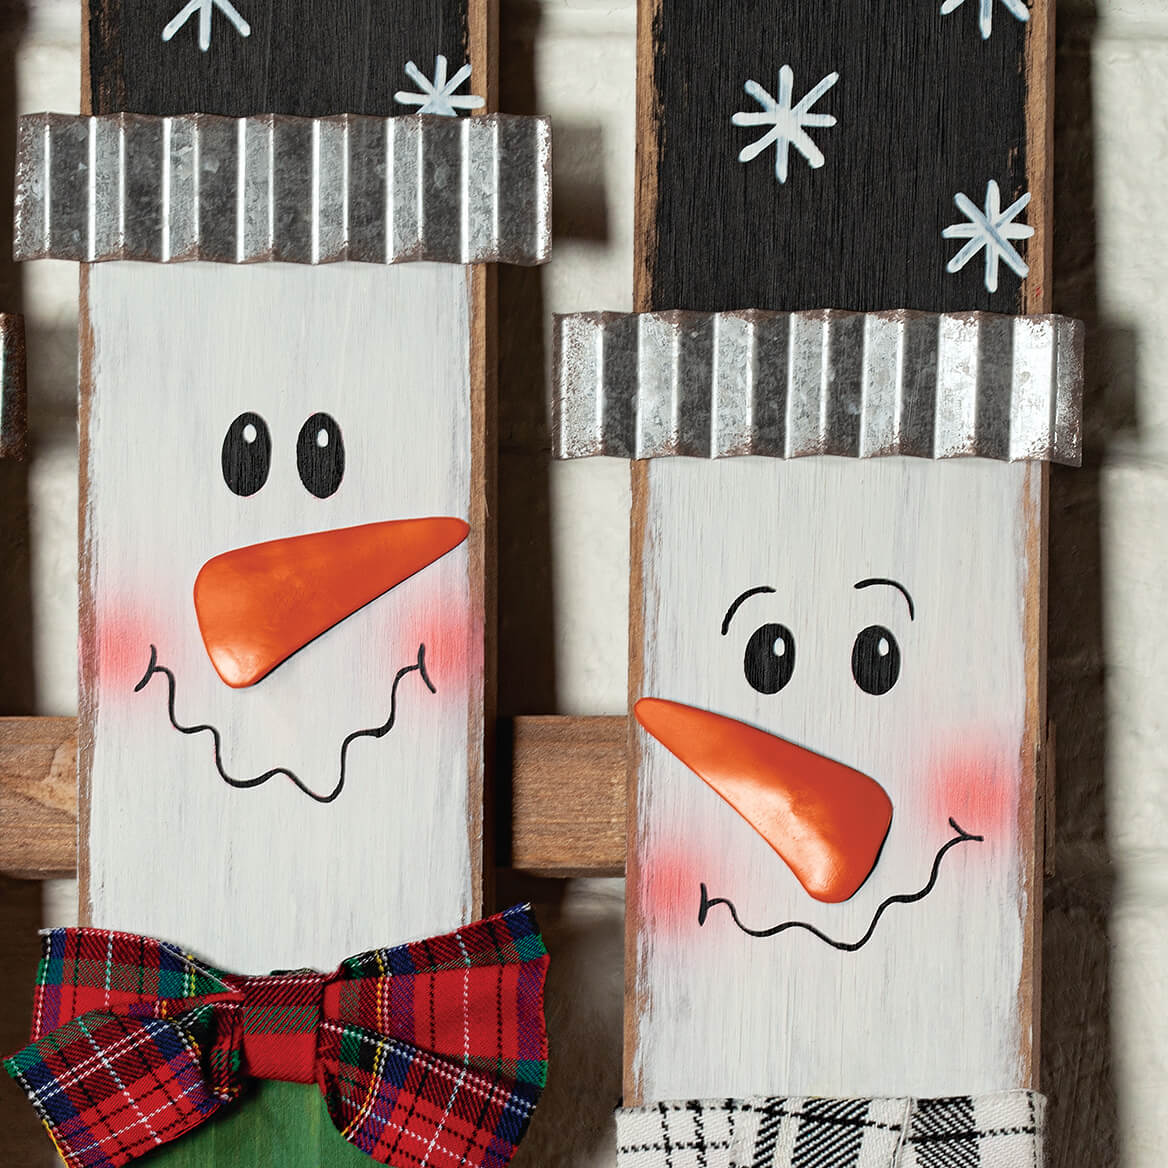 Snowman Fence Yard Stake by Fox River™ Creations-369642